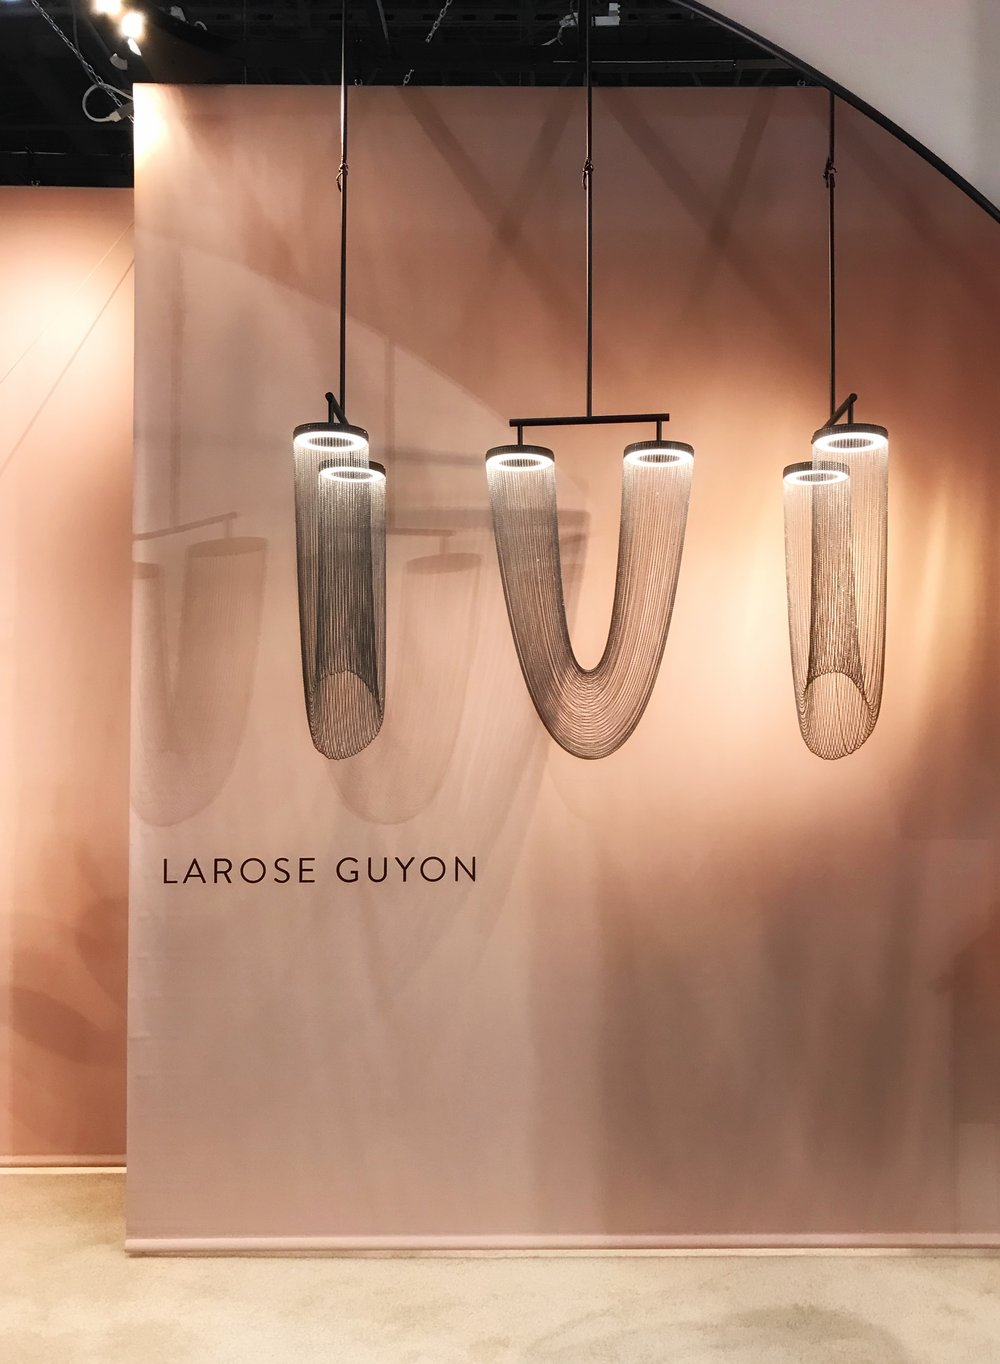 Photo of Larose Guyon's Otero in multiples, ICFF, New York 2018